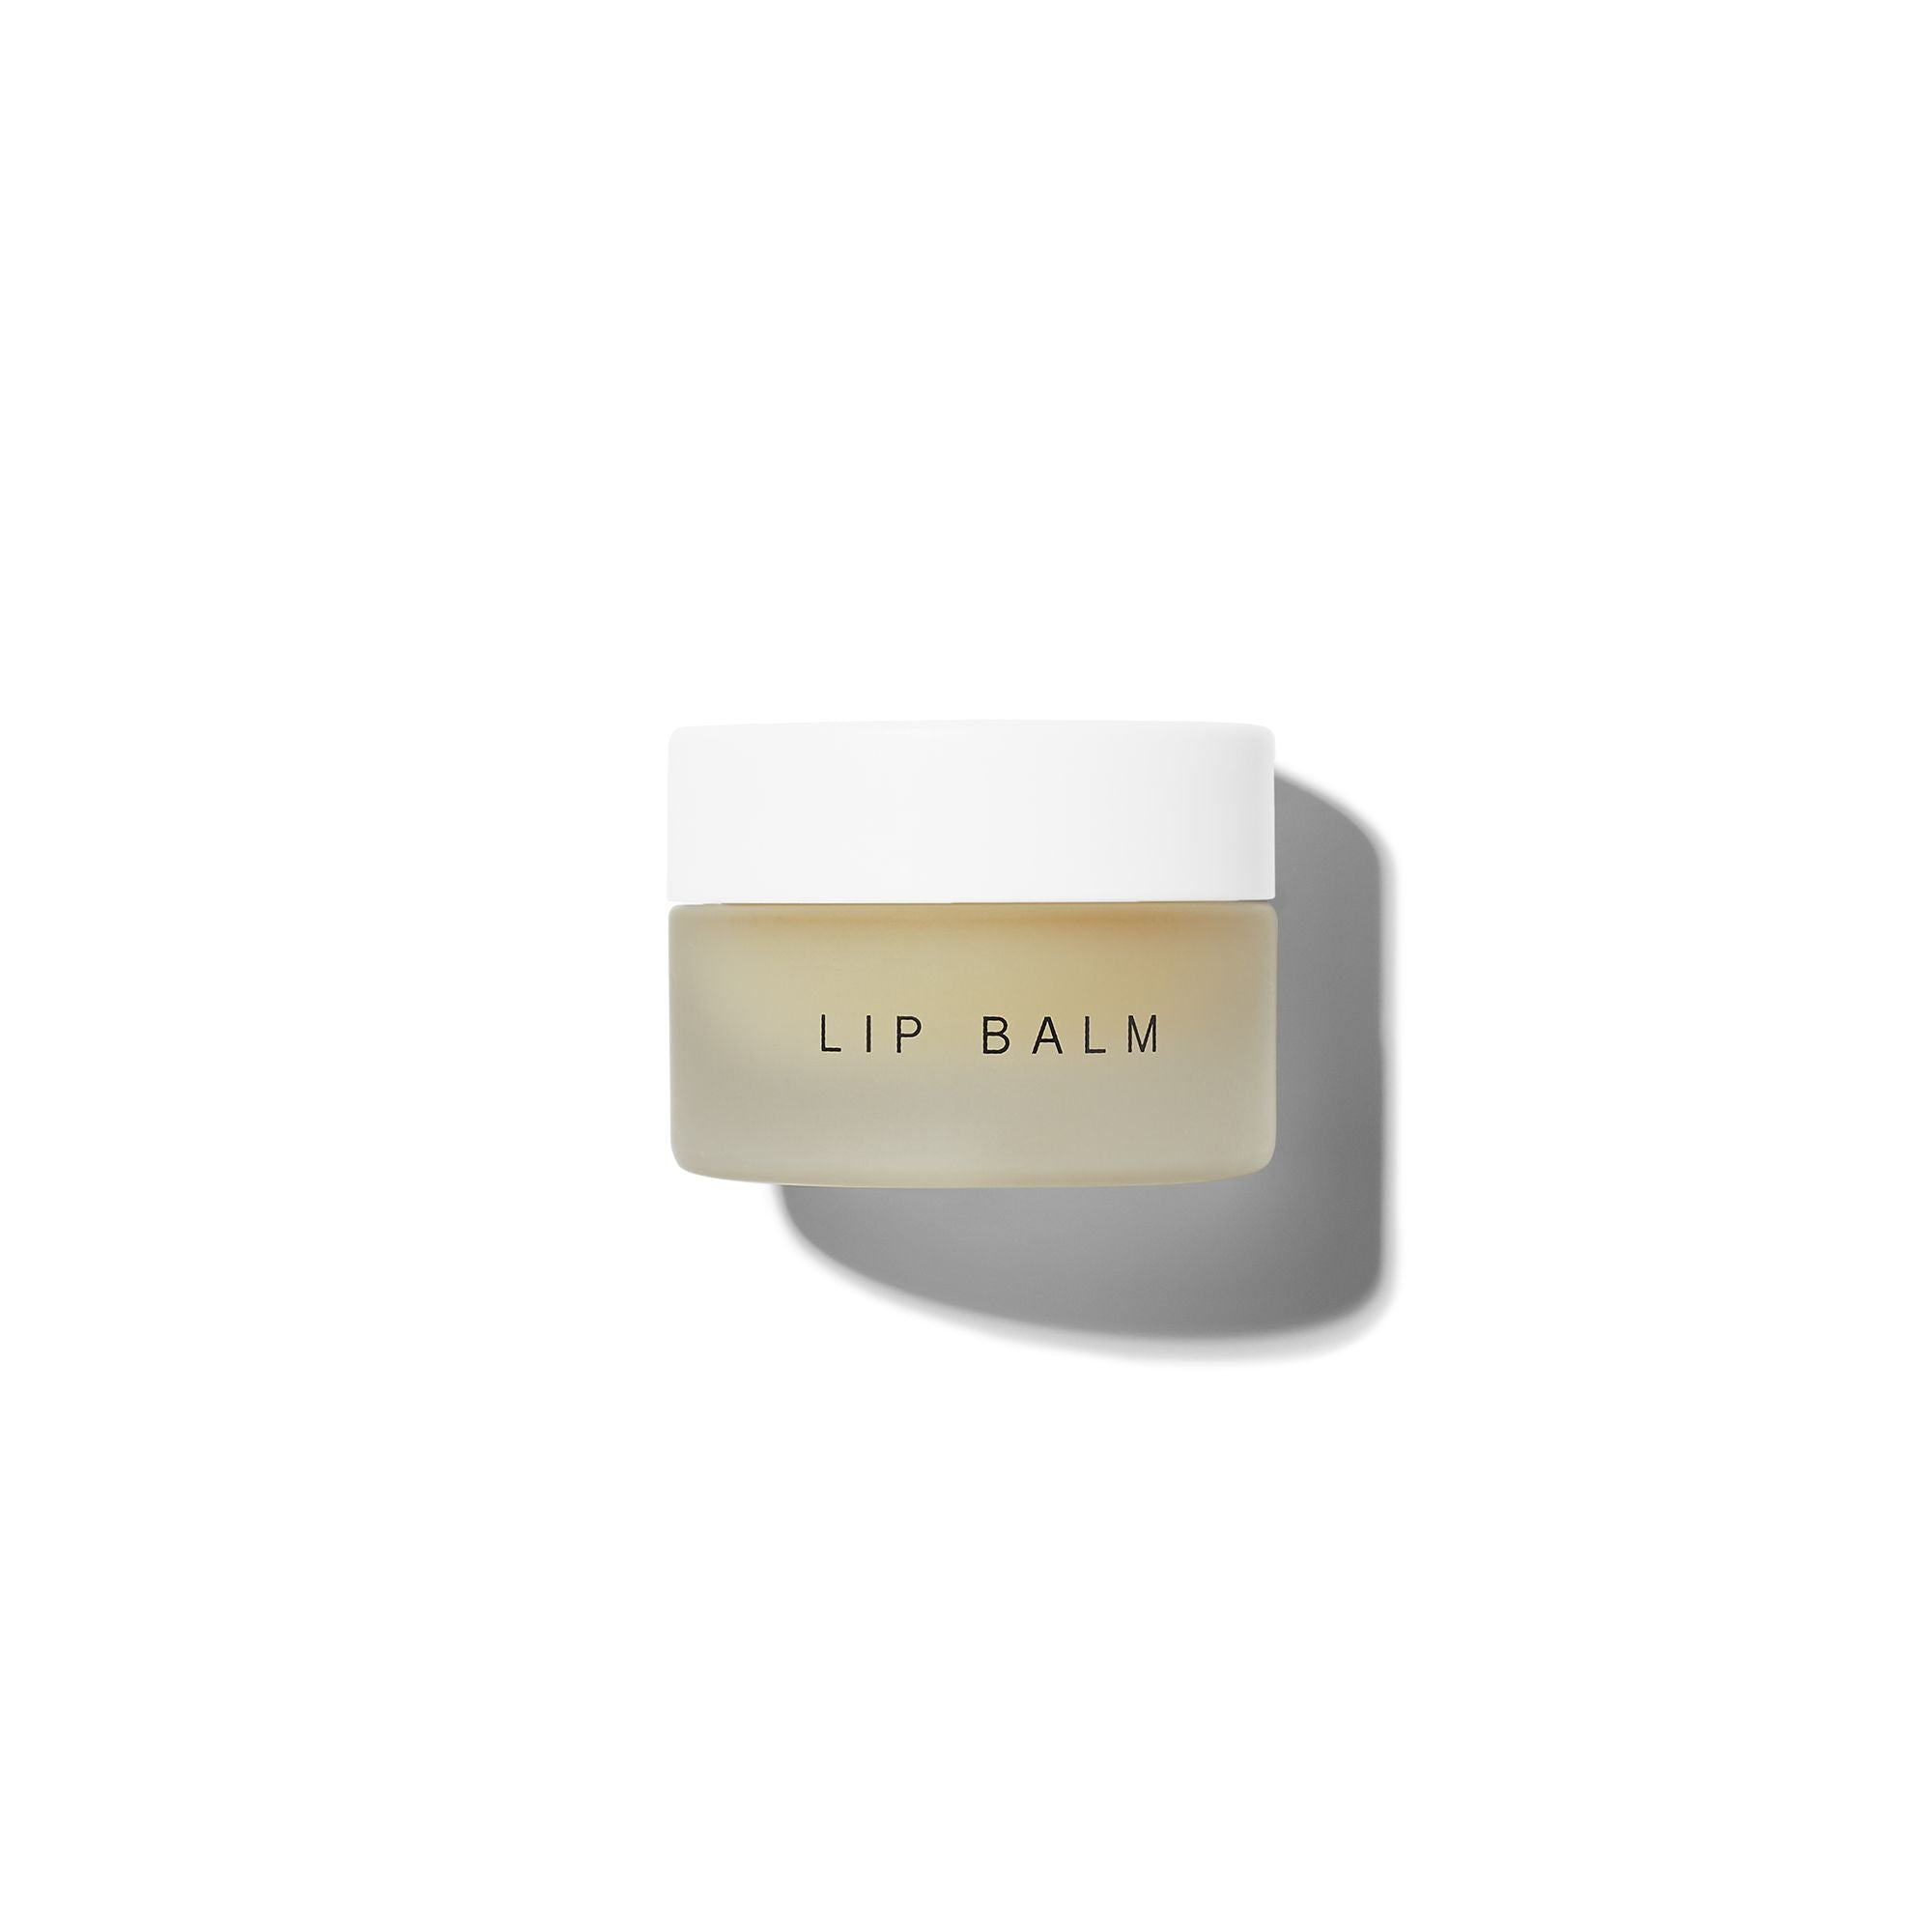 Buy Dr. Babara Sturm Glow Lip Balm wellness products from Delaire Graff Estate online store